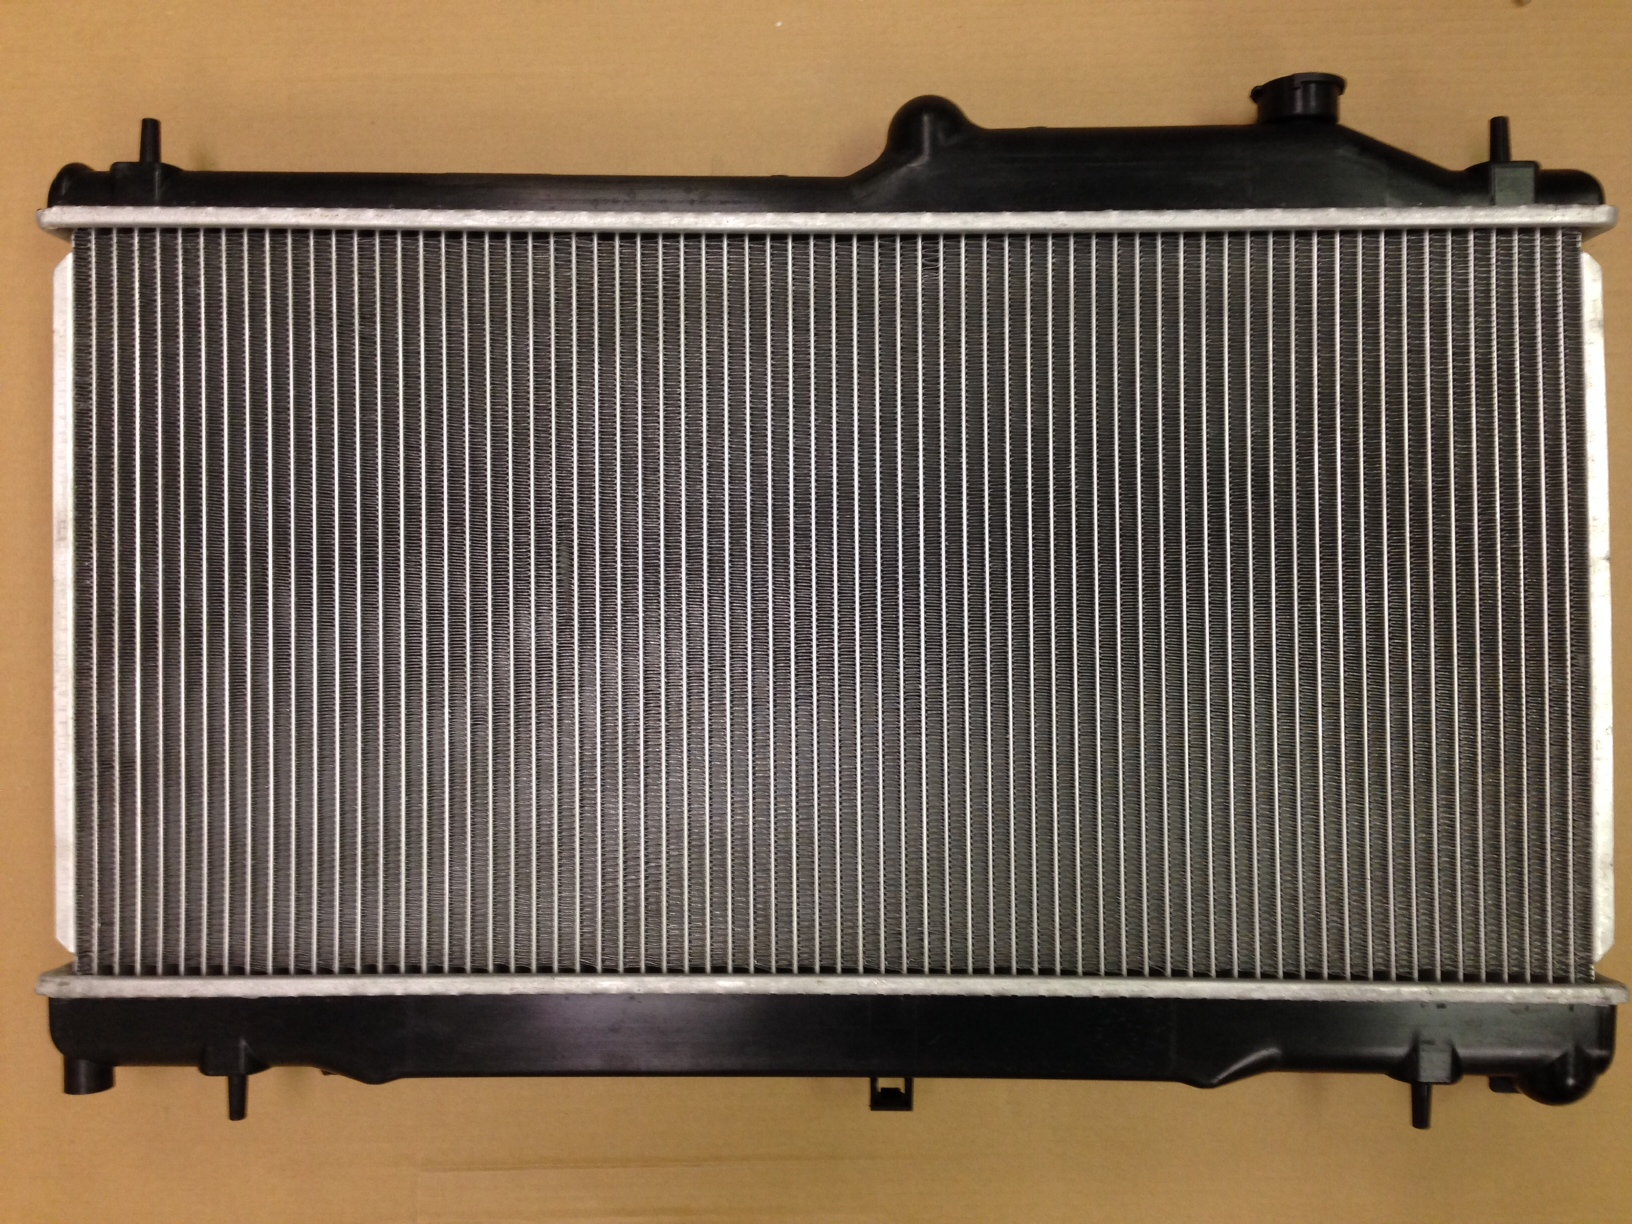 New OEM Replacement Radiator For Subaru Forester 2009-2013